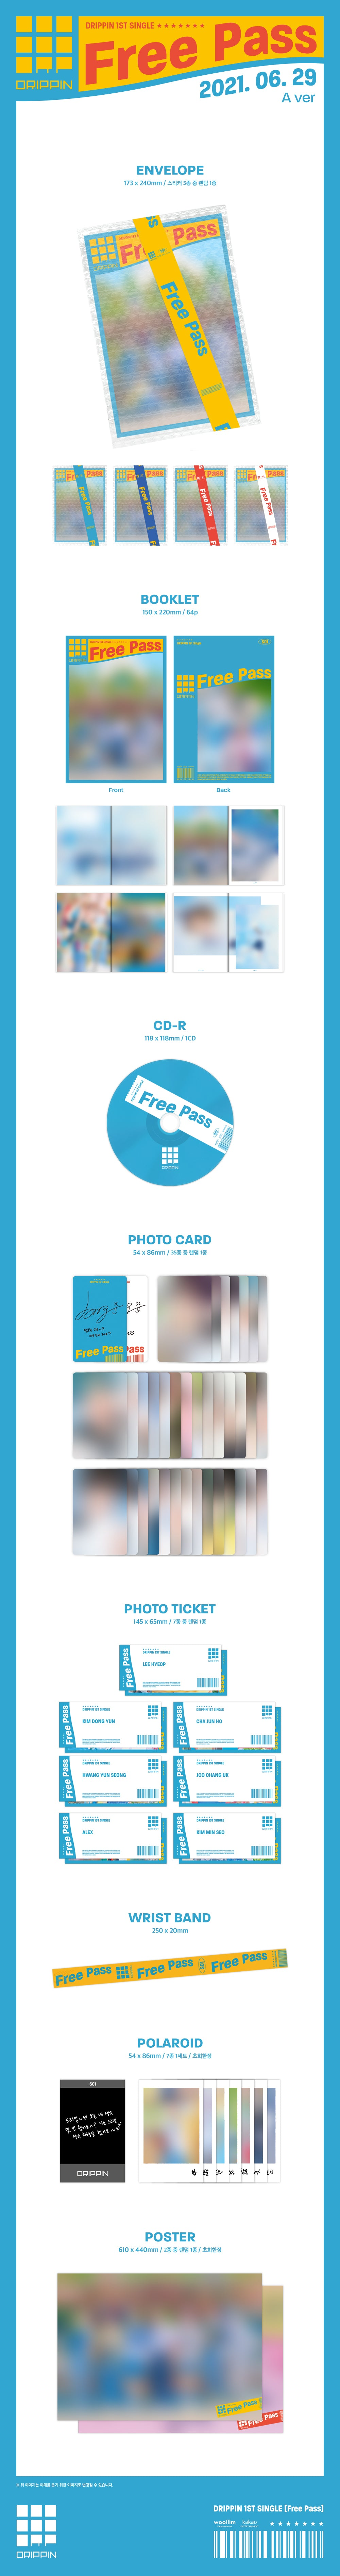 PREORDER - DRIPPIN - SINGLE ALBUM FREE PASS Ver A Infographic